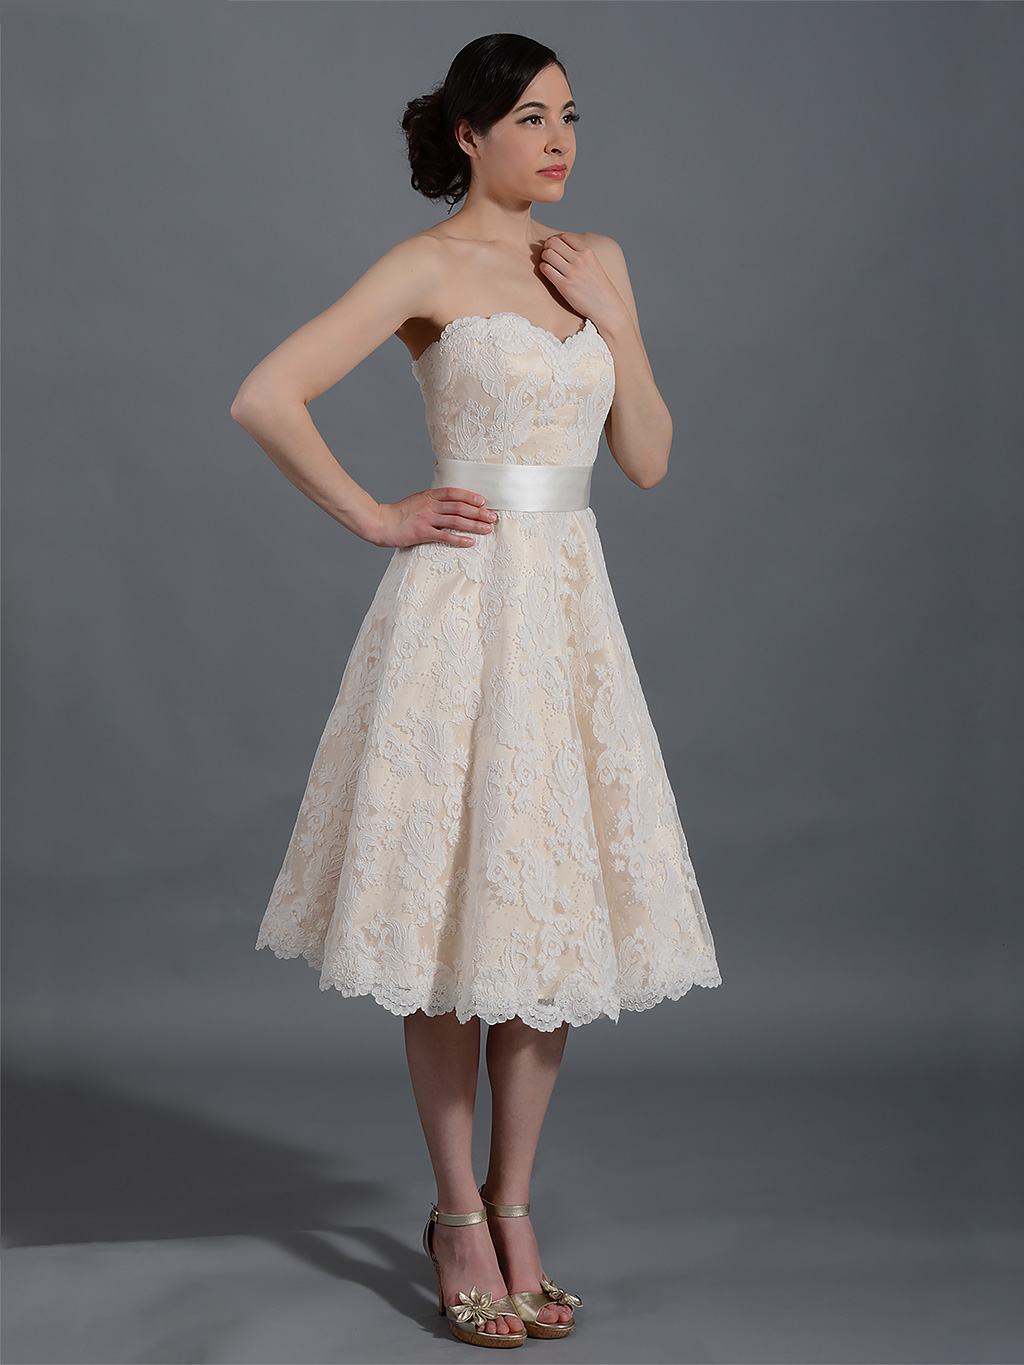 Short Strapless Sweetheart Lace overlay Satin Knee Length Wedding Dress with Ribbon